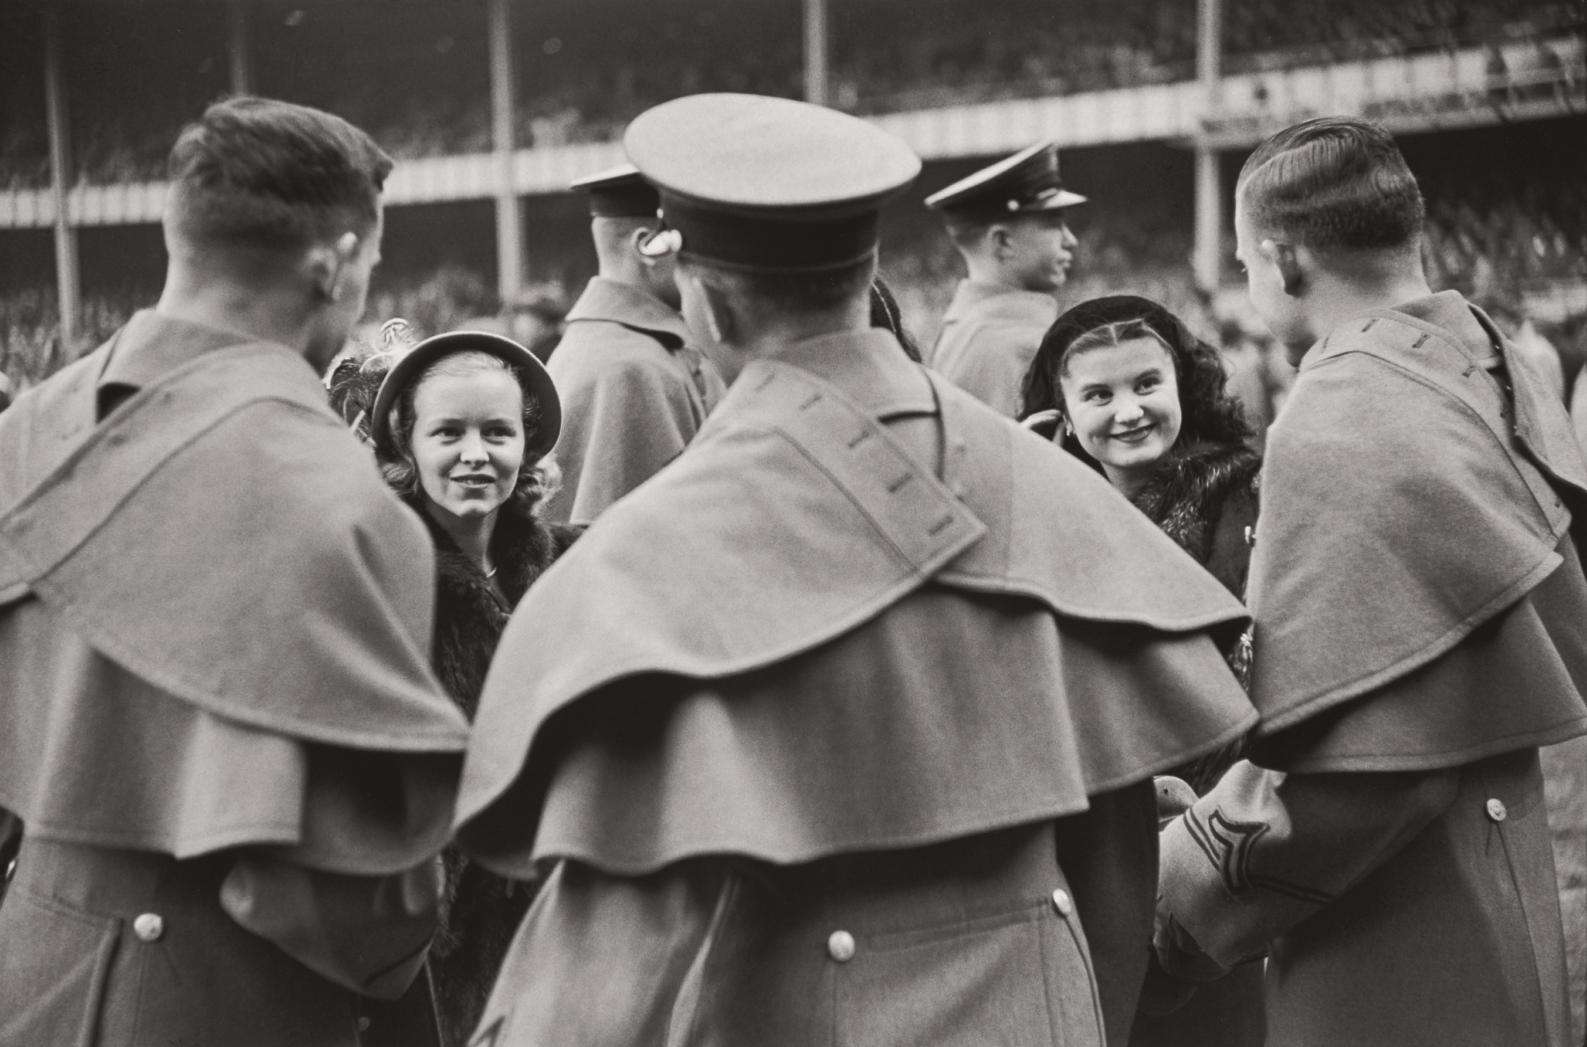 Henri Cartier-Bresson-West Point Cadets And Their Admiring Young Ladies Attend The Army Versus Notre Dame Football Game, New York-1947